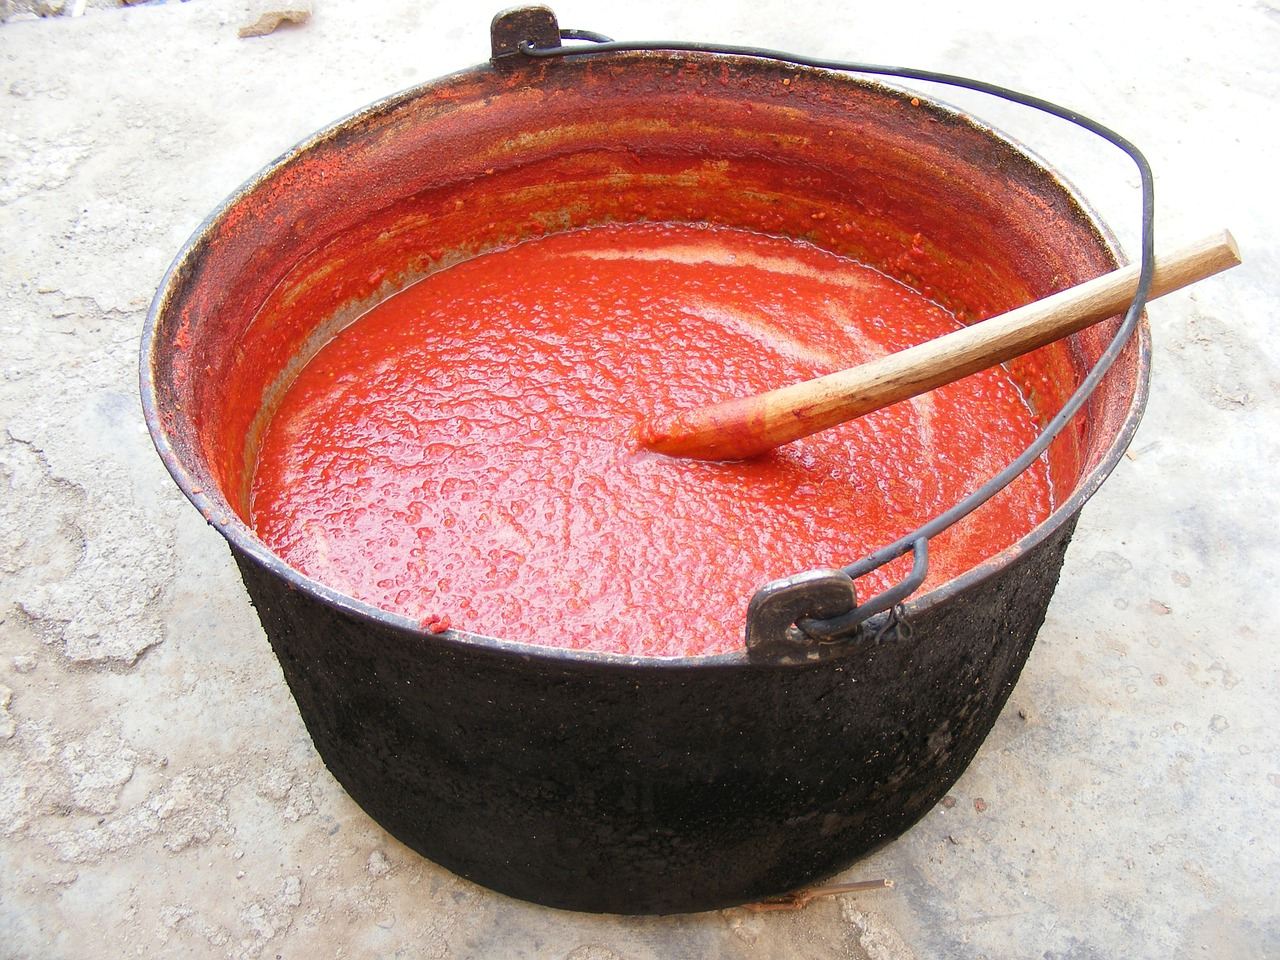 red sauce soup free photo